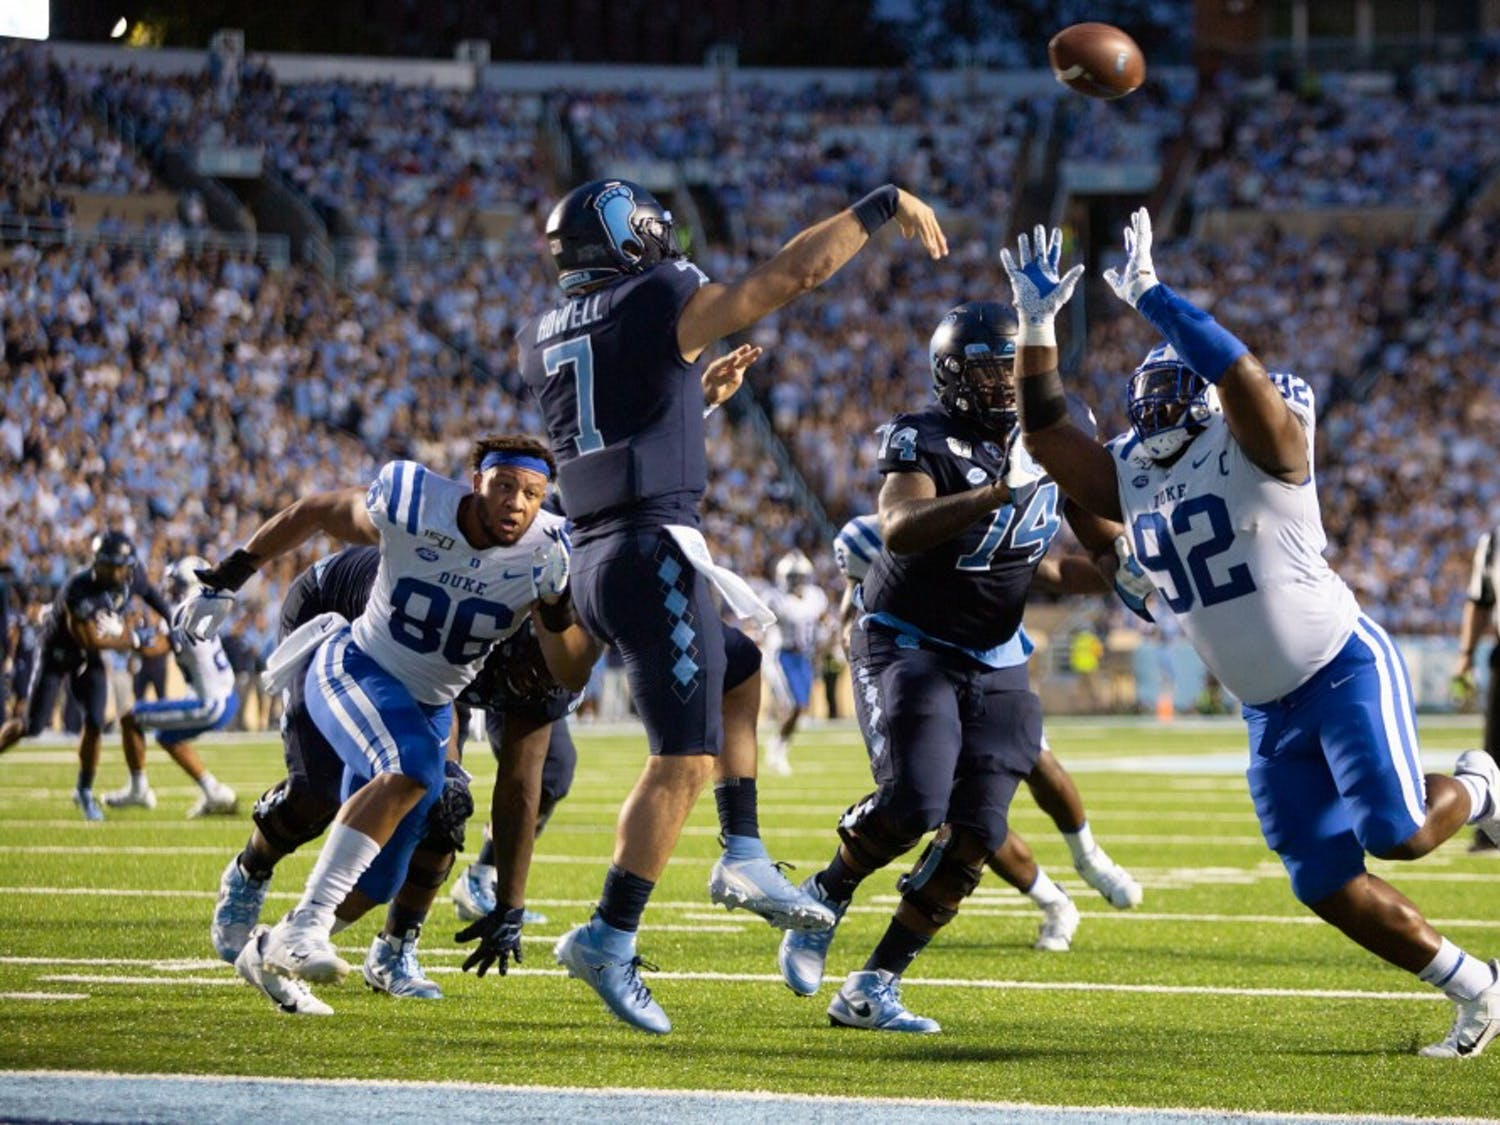 First-year quarterback Sam Howell (7) passes the ball in the homecoming game against Duke on Saturday, Oct. 26, 2019 in Kenan Memorial Stadium. UNC defeated Duke 20-17 for the first time in three years.